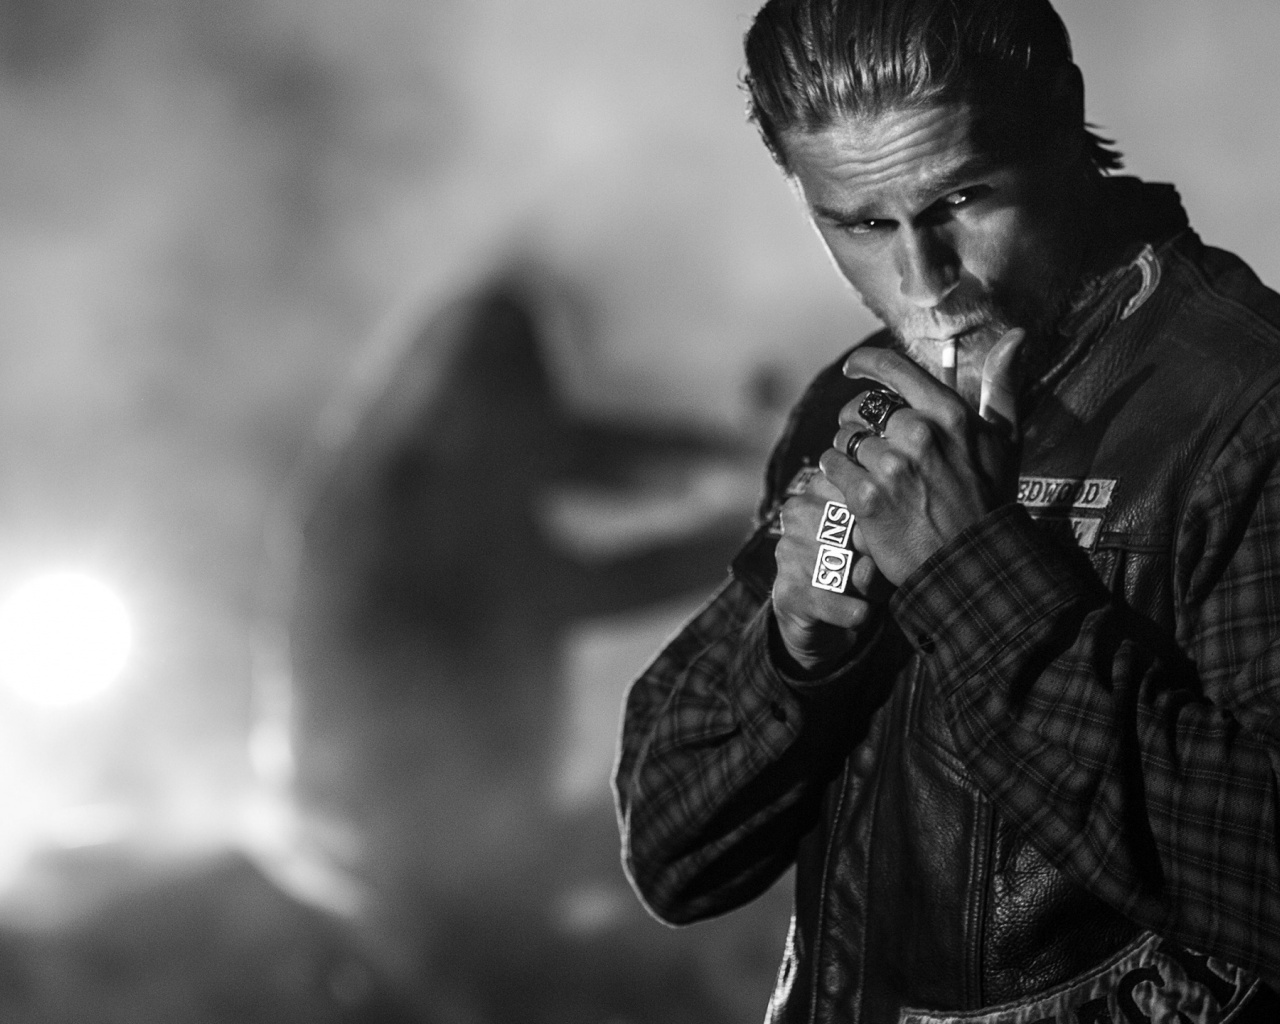 sons of anarchy charlie hunnam wallpapers 46927 1280x1024jpg 1280x1024